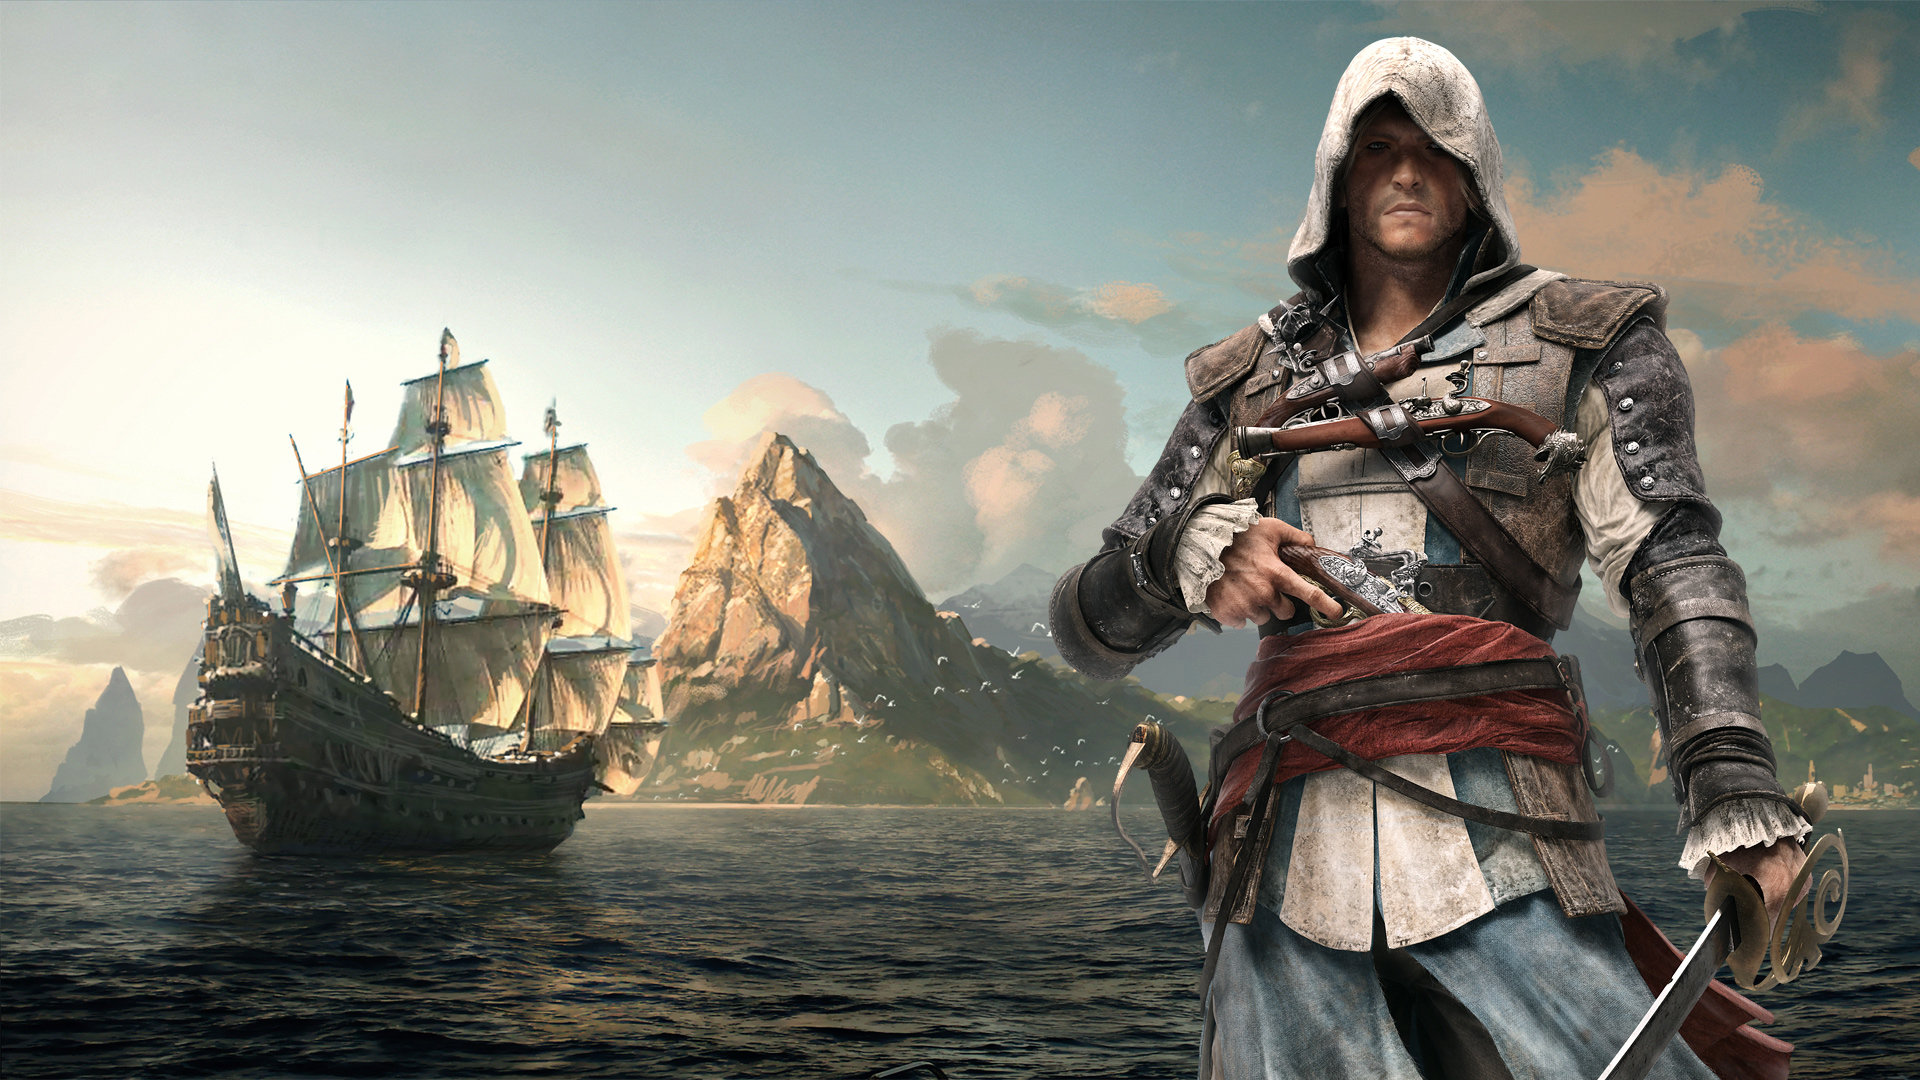 Awesome Assassin's Creed 4: Black Flag free wallpaper ID:234576 for full hd computer